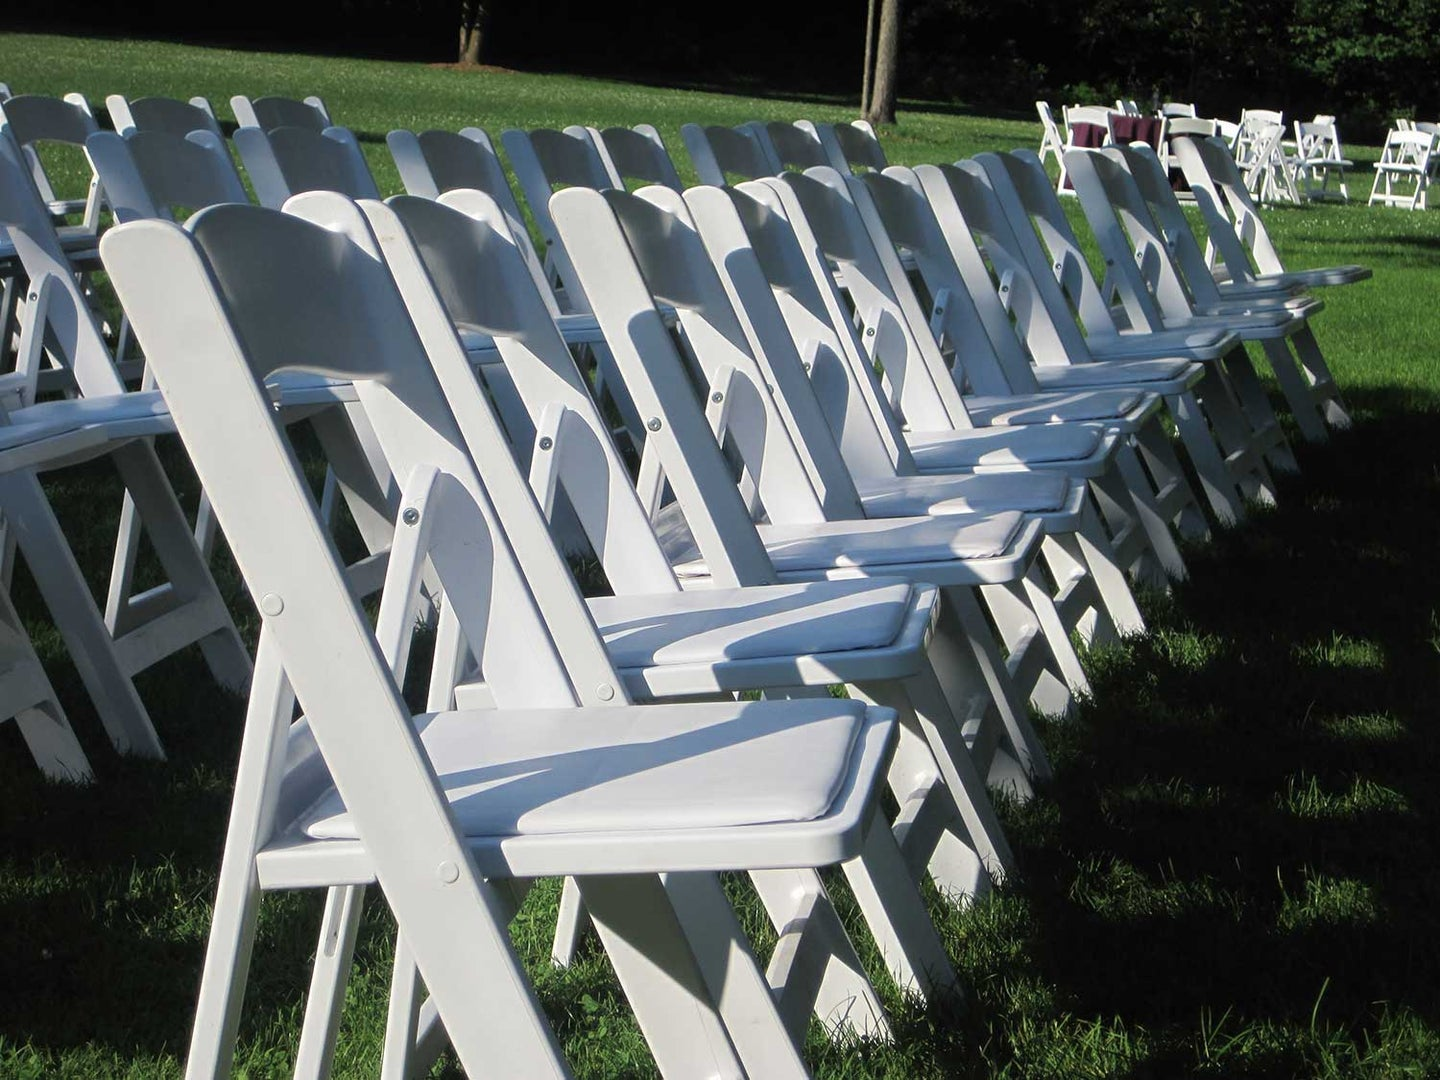 White folding chairs lined up on lawn.